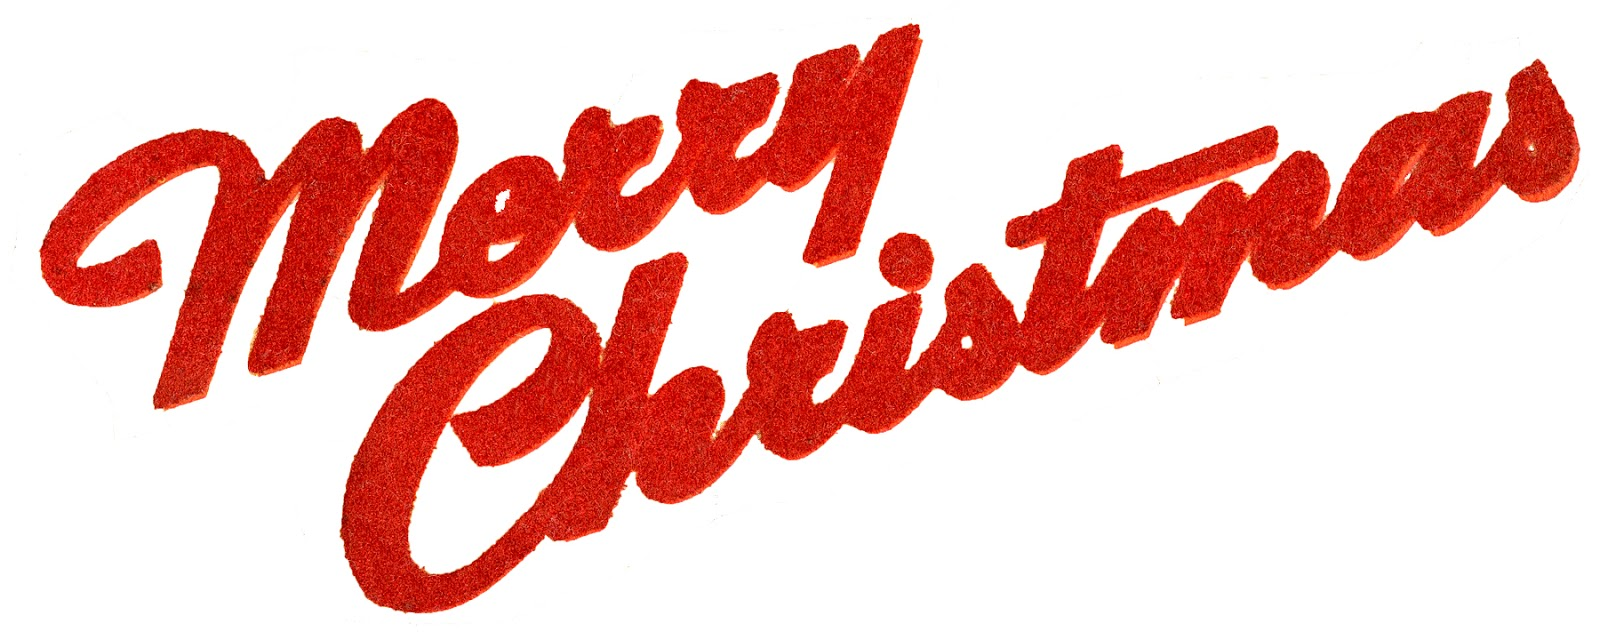 free clipart merry christmas text - photo #17